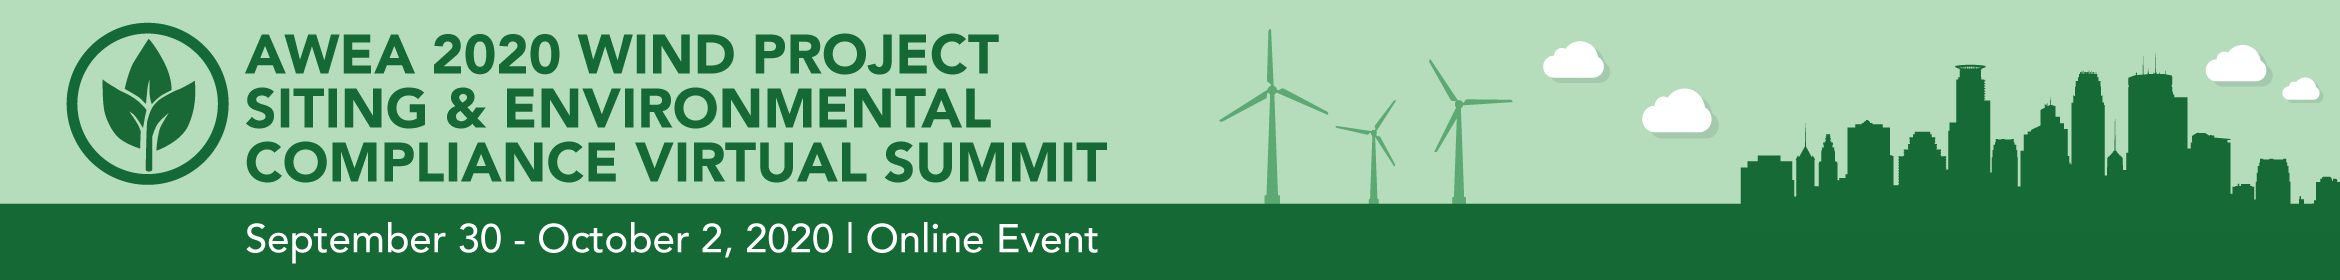 Wind Project Siting & Environmental Compliance 2020 Main banner